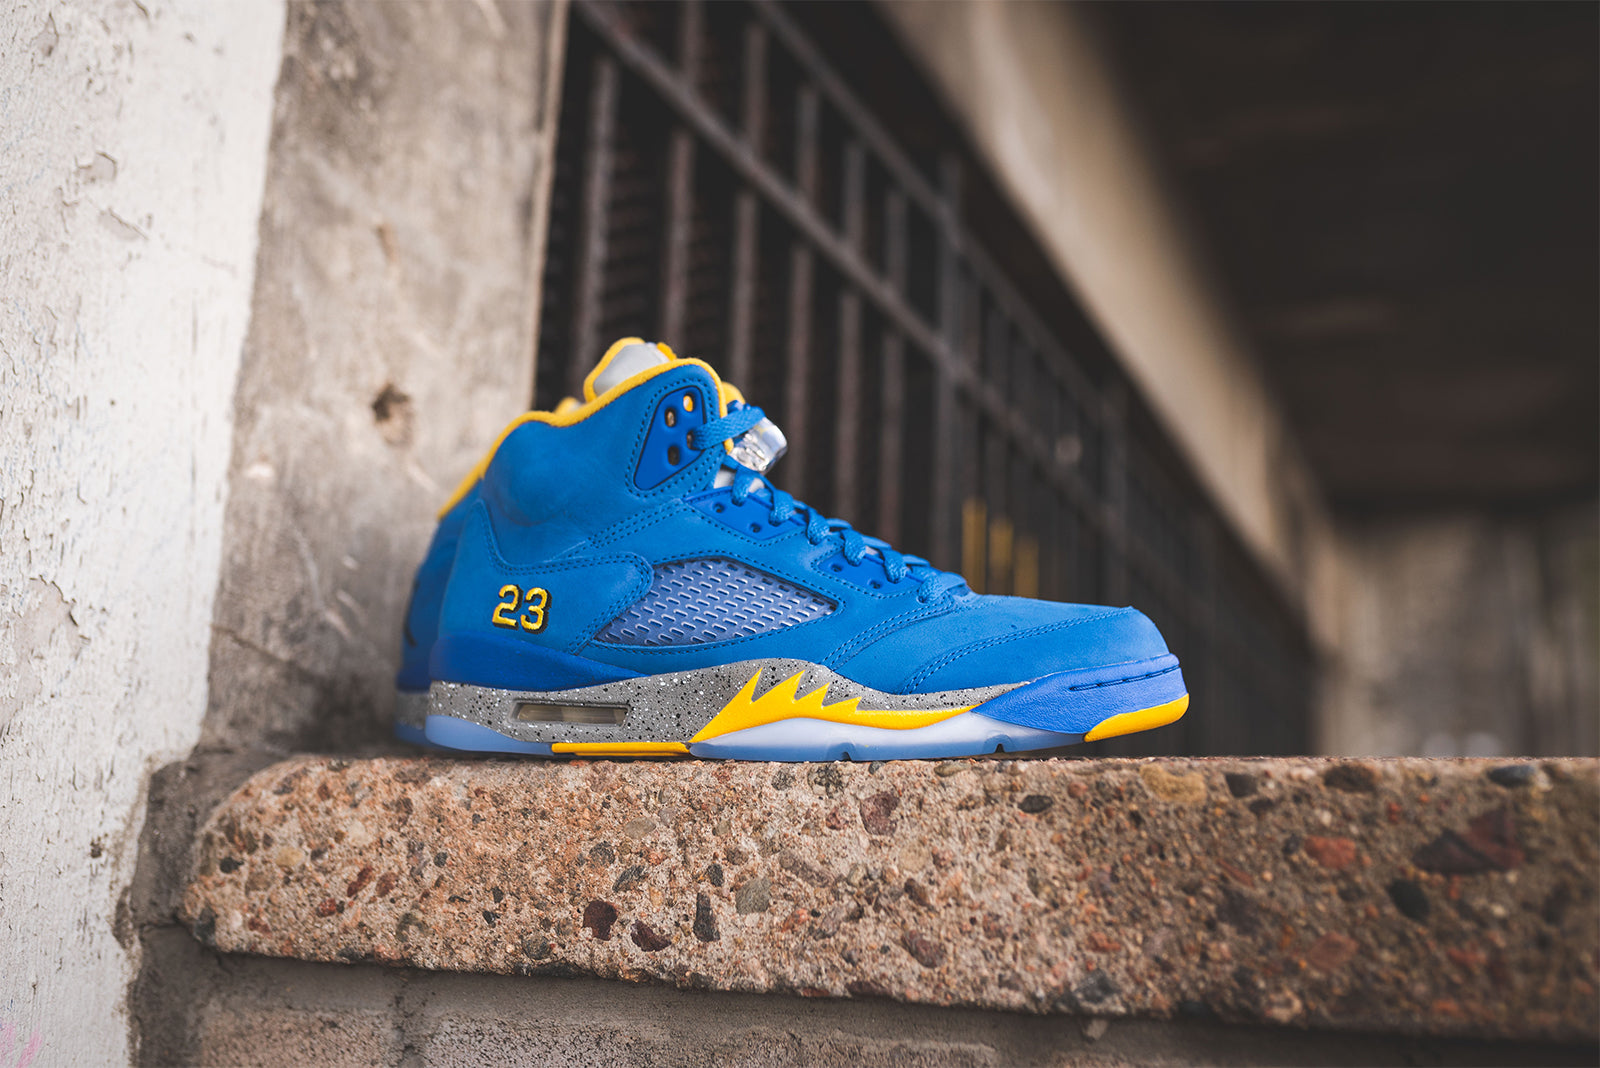 promo code 8707b fa436 Nike Air Jordan 5 Retro  Laney  CD2720-400. Varsity Royal Varsity Maize  Price  £165.00. Launch  Saturday 9th of February ONLINE  08 00 GMT